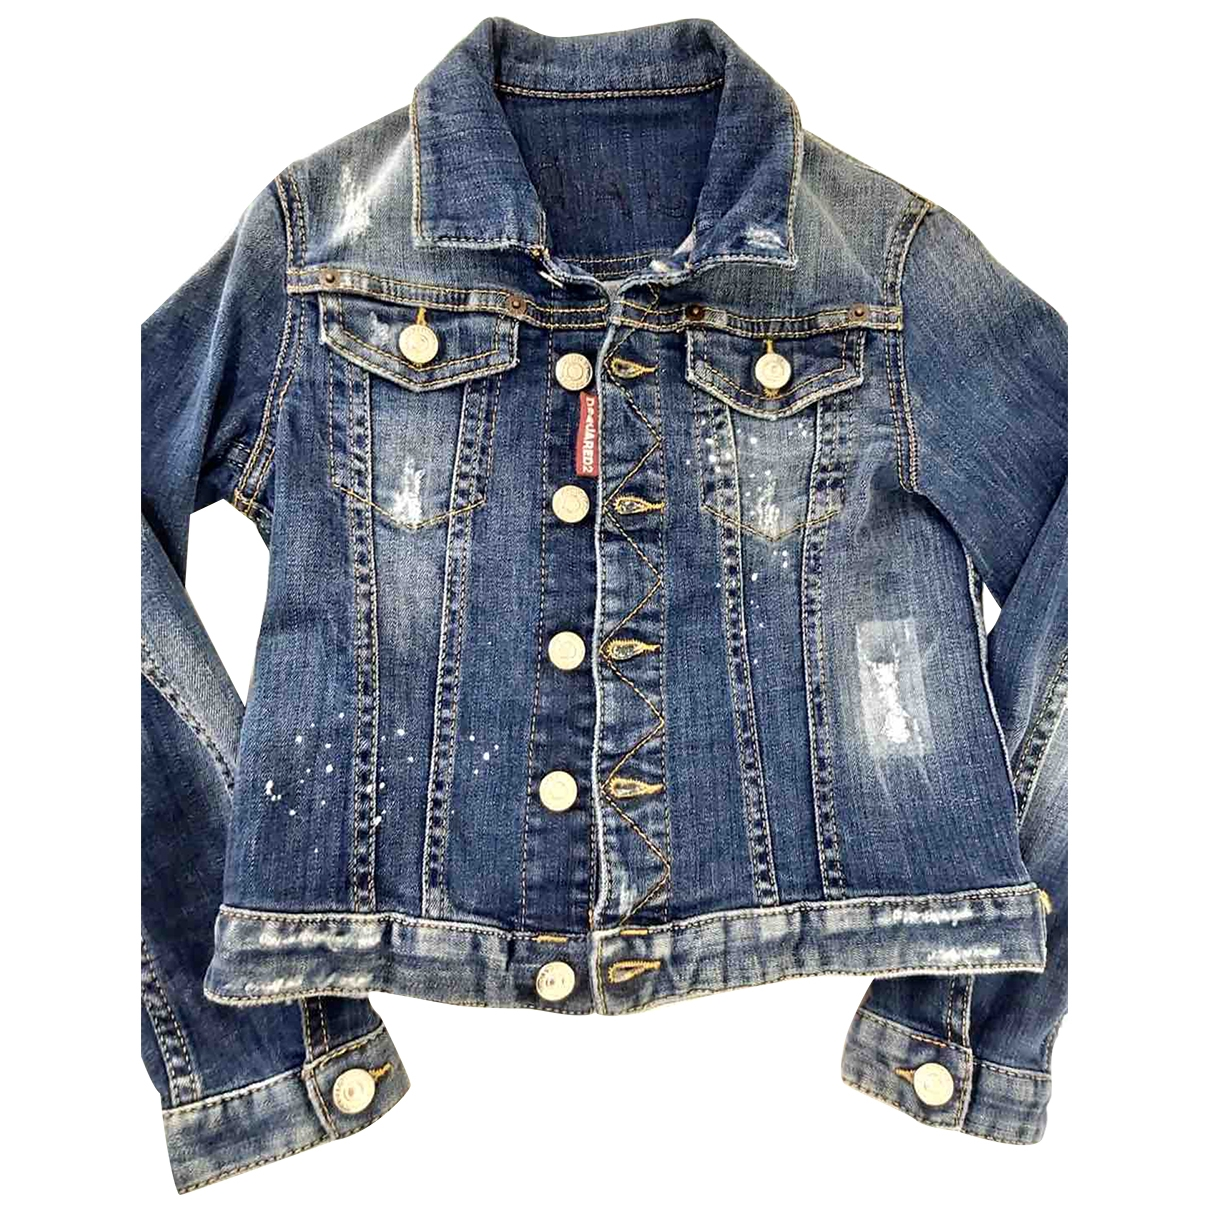 Dsquared2 \N Blue Denim - Jeans jacket & coat for Kids 8 years - up to 128cm FR